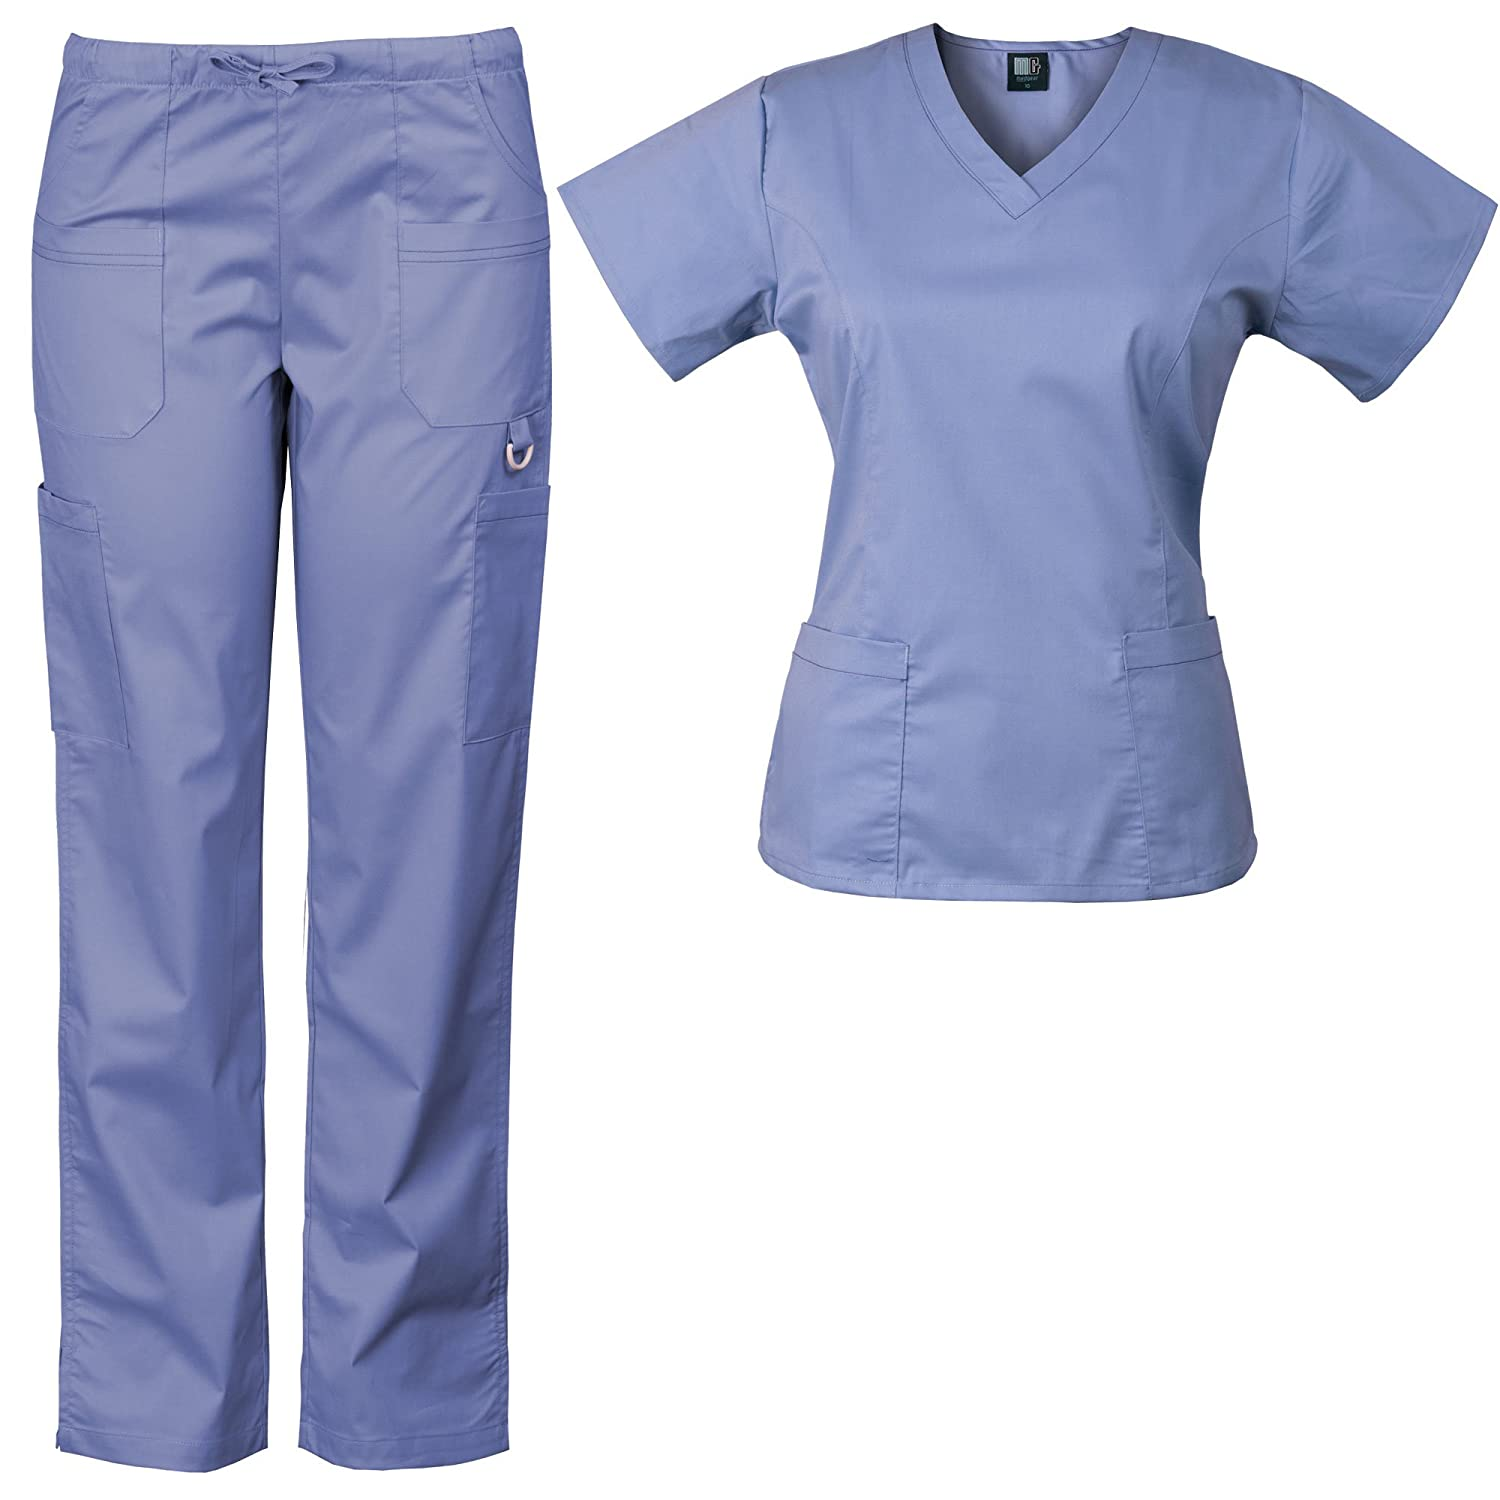 b15a64b79f3 Amazon.com: Medgear 3-Piece Eversoft Stretch Scrubs Set with Printed Top  Combo 7895ST: Clothing